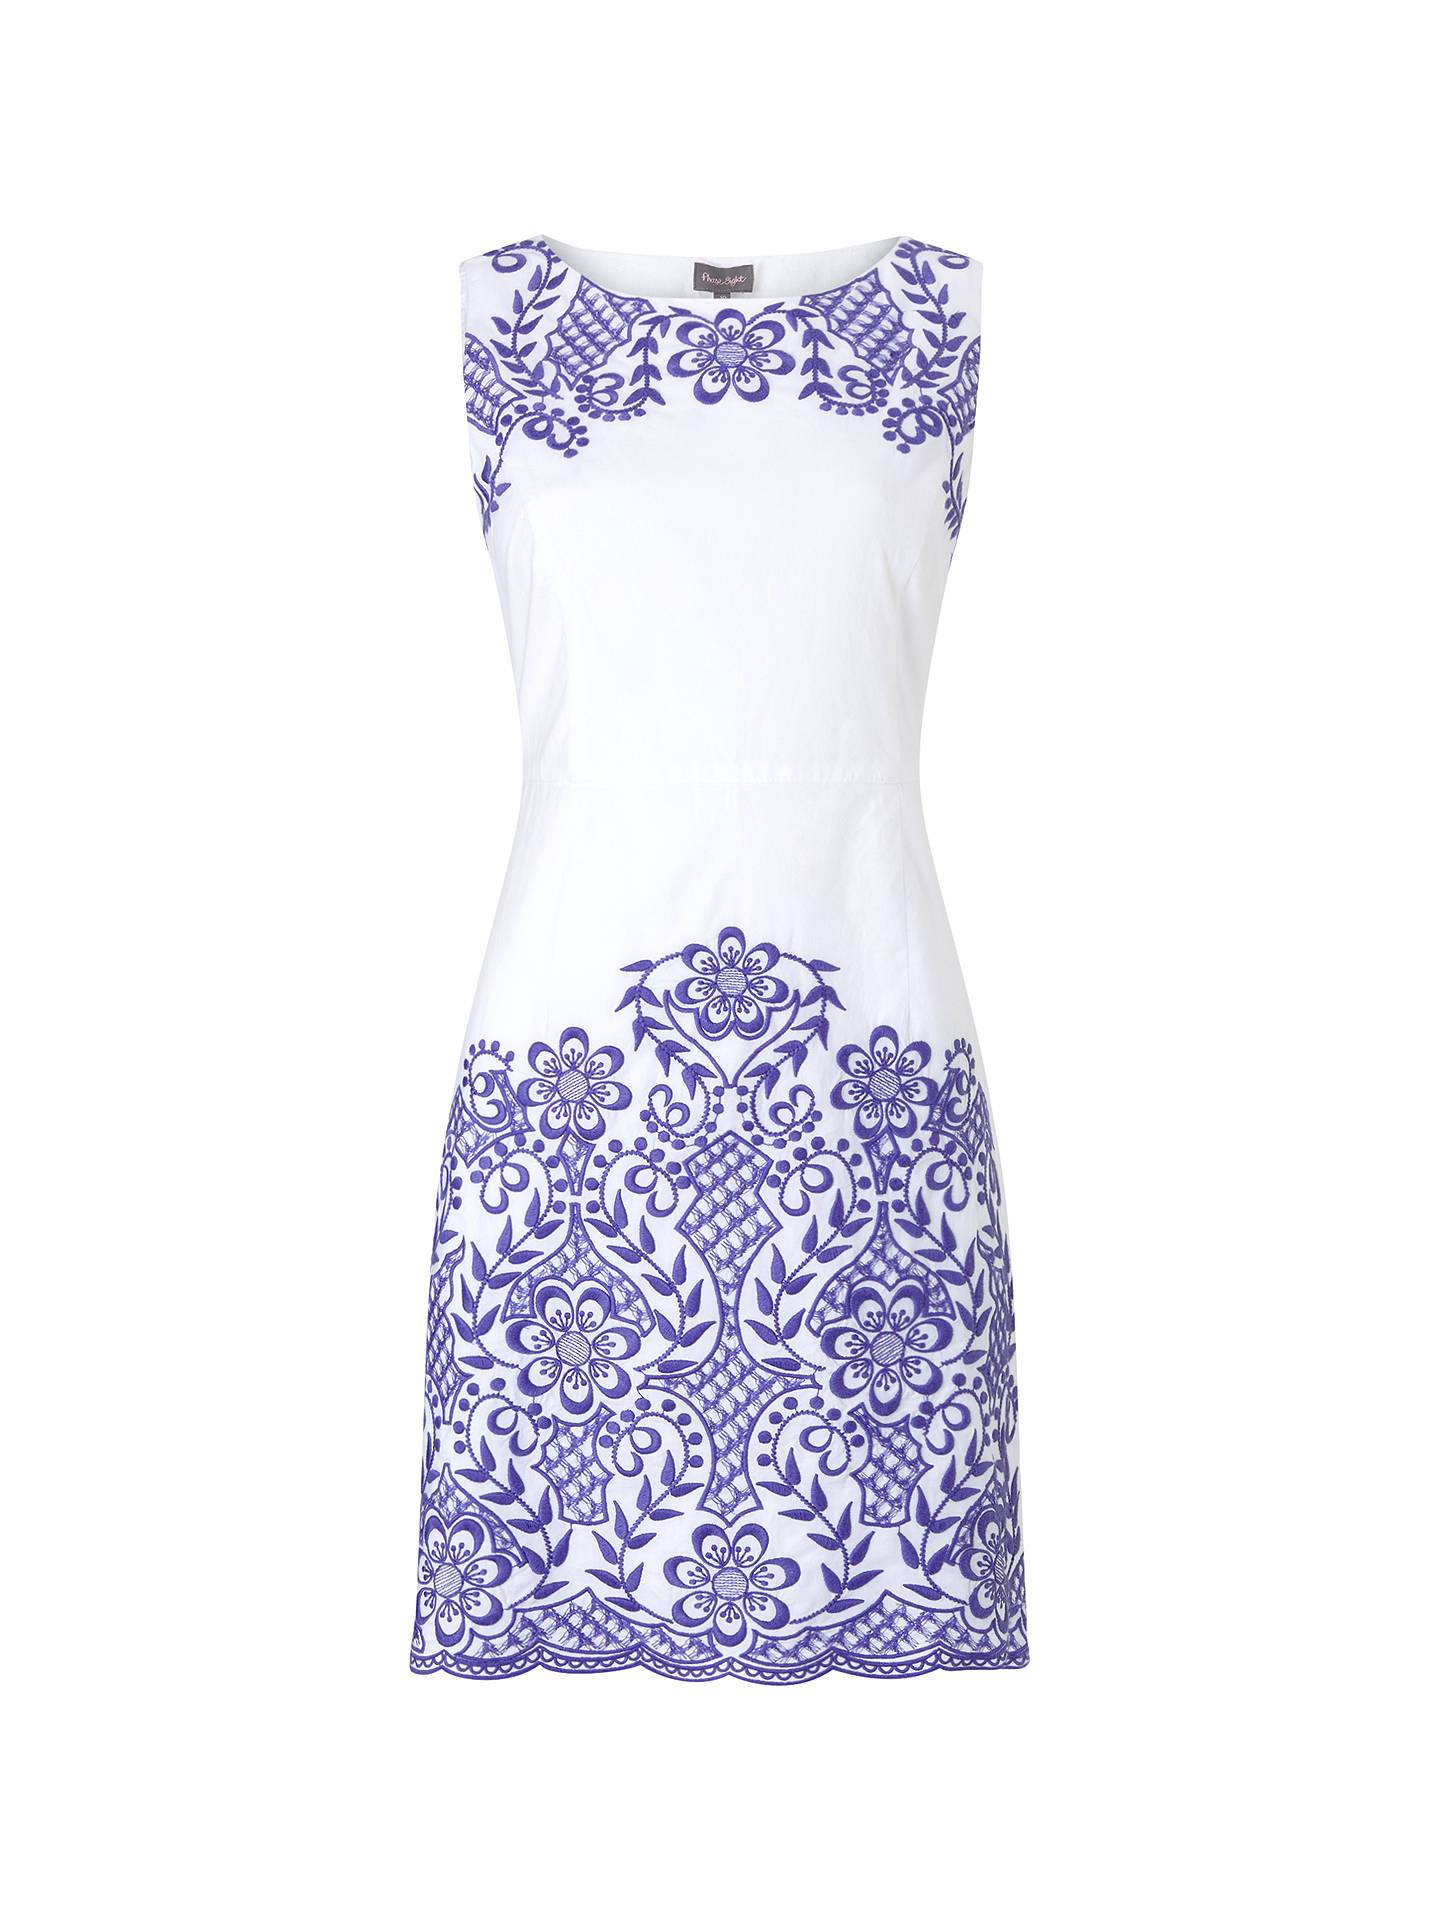 Phase Eight Eden Embroidered Dress Blue White At John Lewis Partners